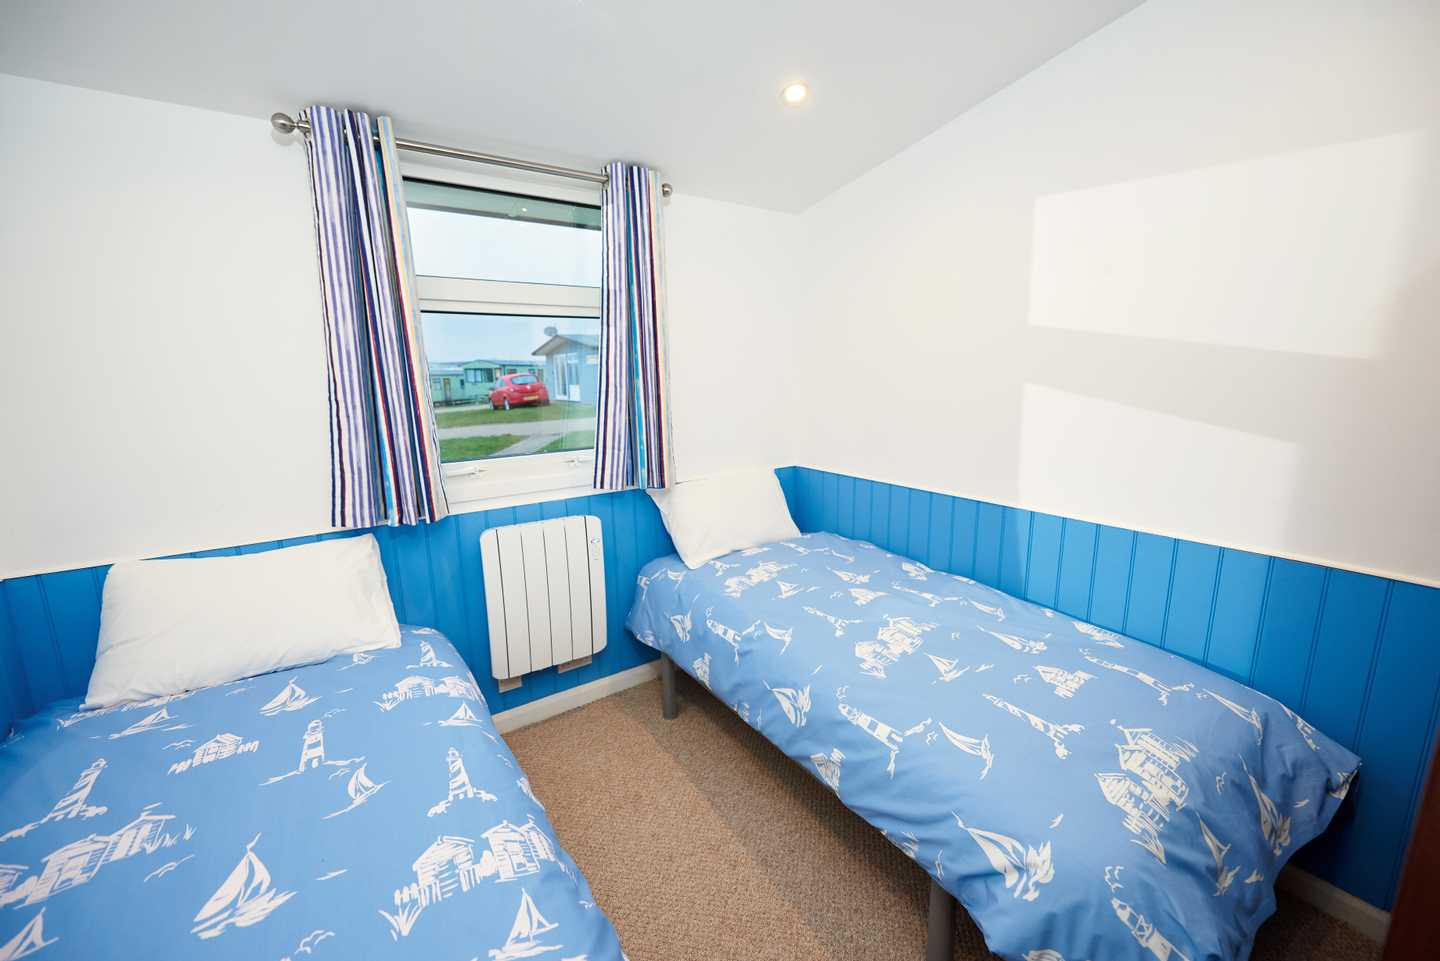 A Comfort chalet twin bedroom with two beds and a radiator